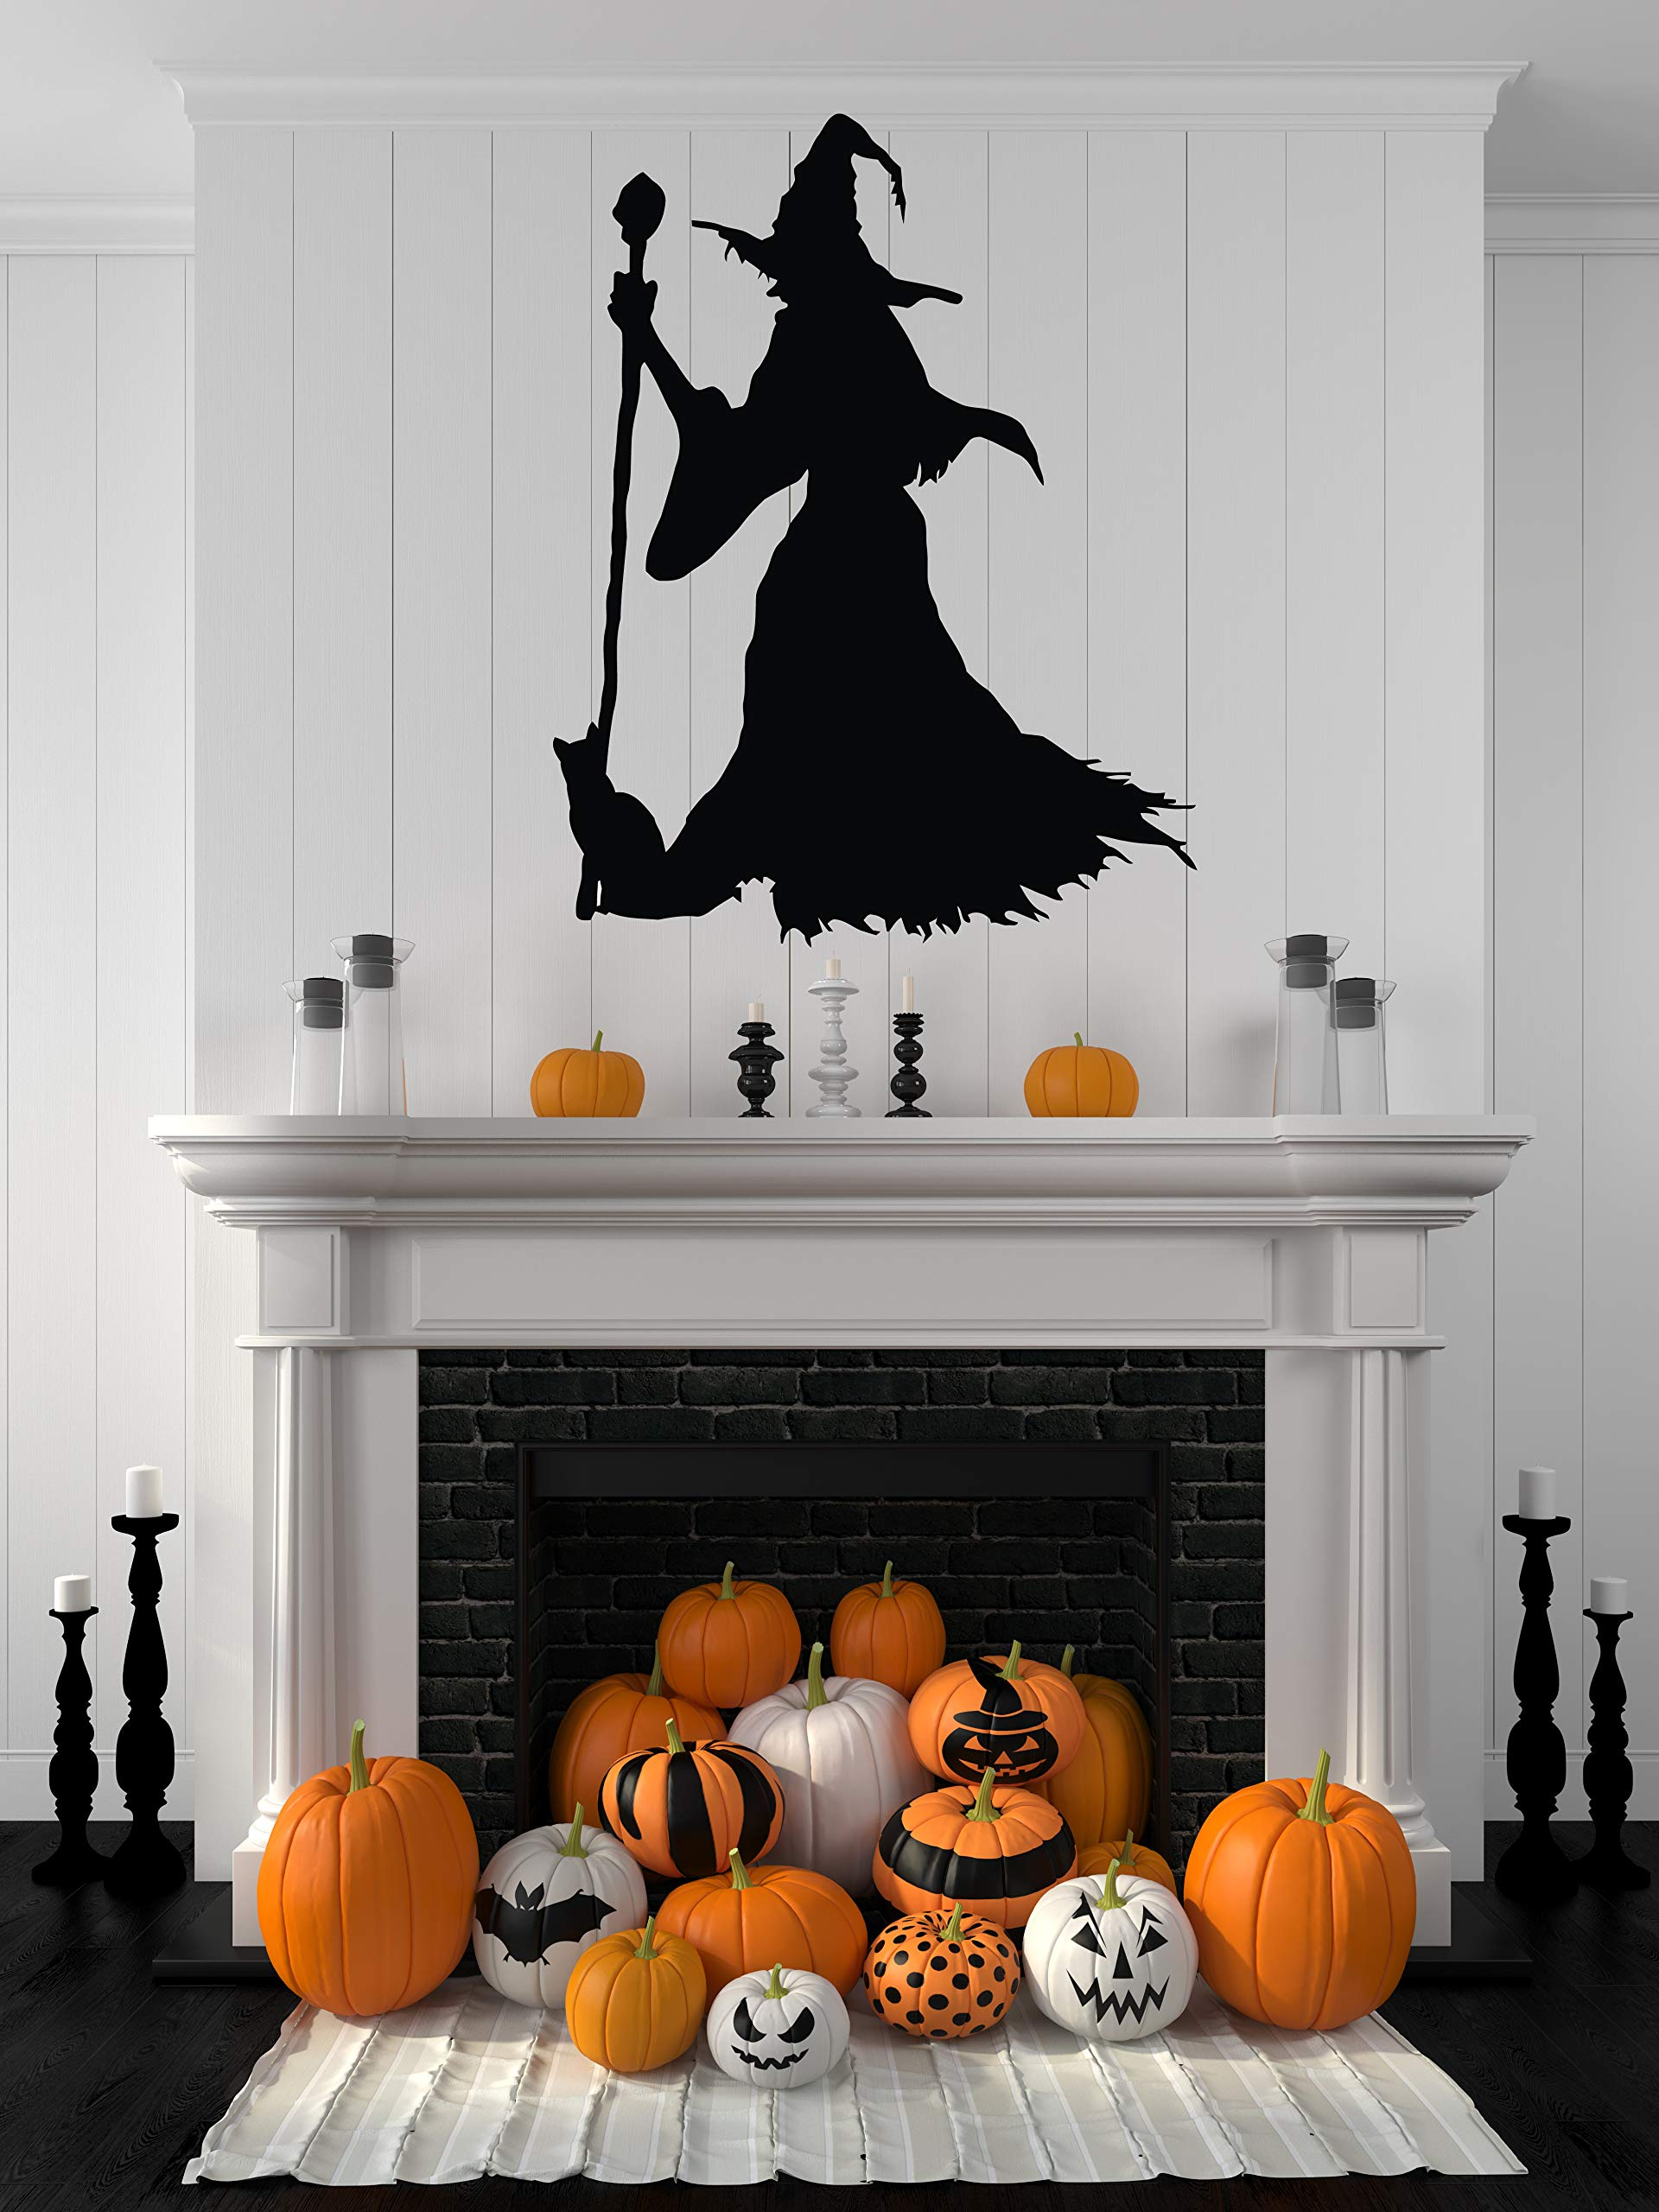 Scary Halloween Decorations Indoor Outdoor - Halloween Wall Decals - Halloween Stickers Window Clings Door Bathroom Home Room Decor - Cute Halloween Party Decorations Ornaments Signs Outside HA068 by Decals Mall